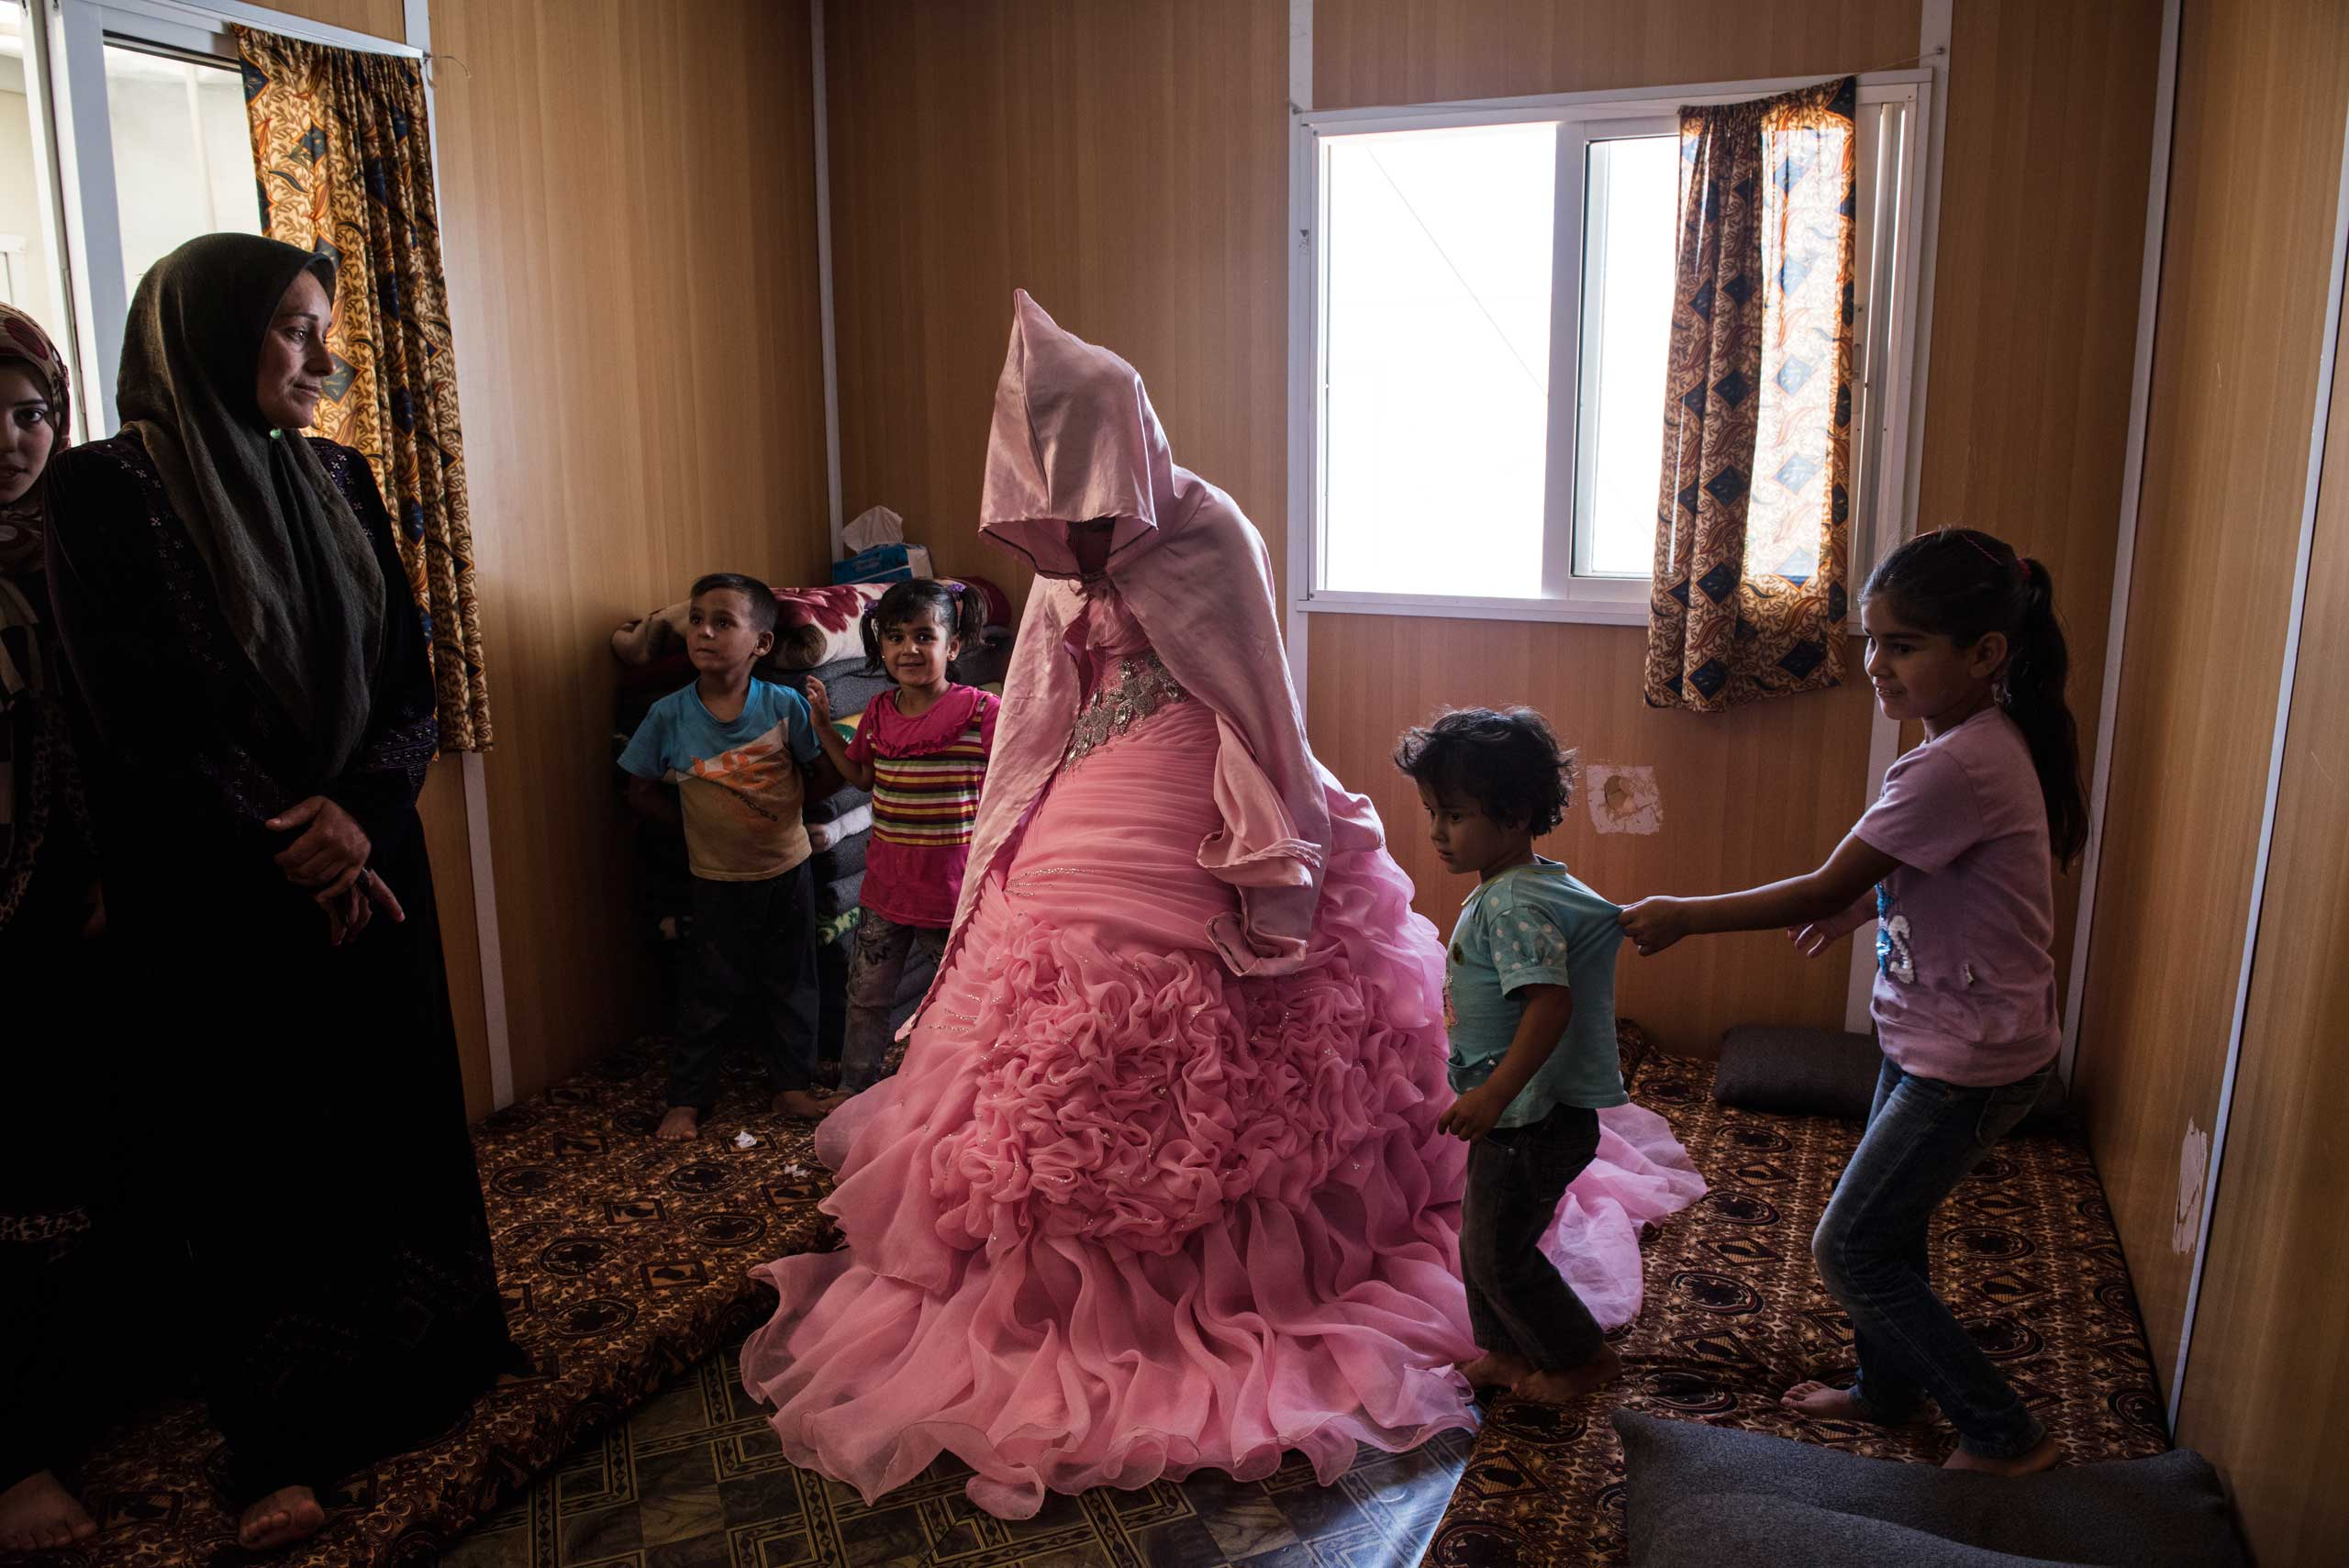 Rahaf Yousef, 13, a Syrian refugee from Daraa, poses for a portrait in her family's trailer as she is surrounded by female relatives on the day of her engagement party at the Zaatari refugee camp in Jordan, Aug. 29, 2014.